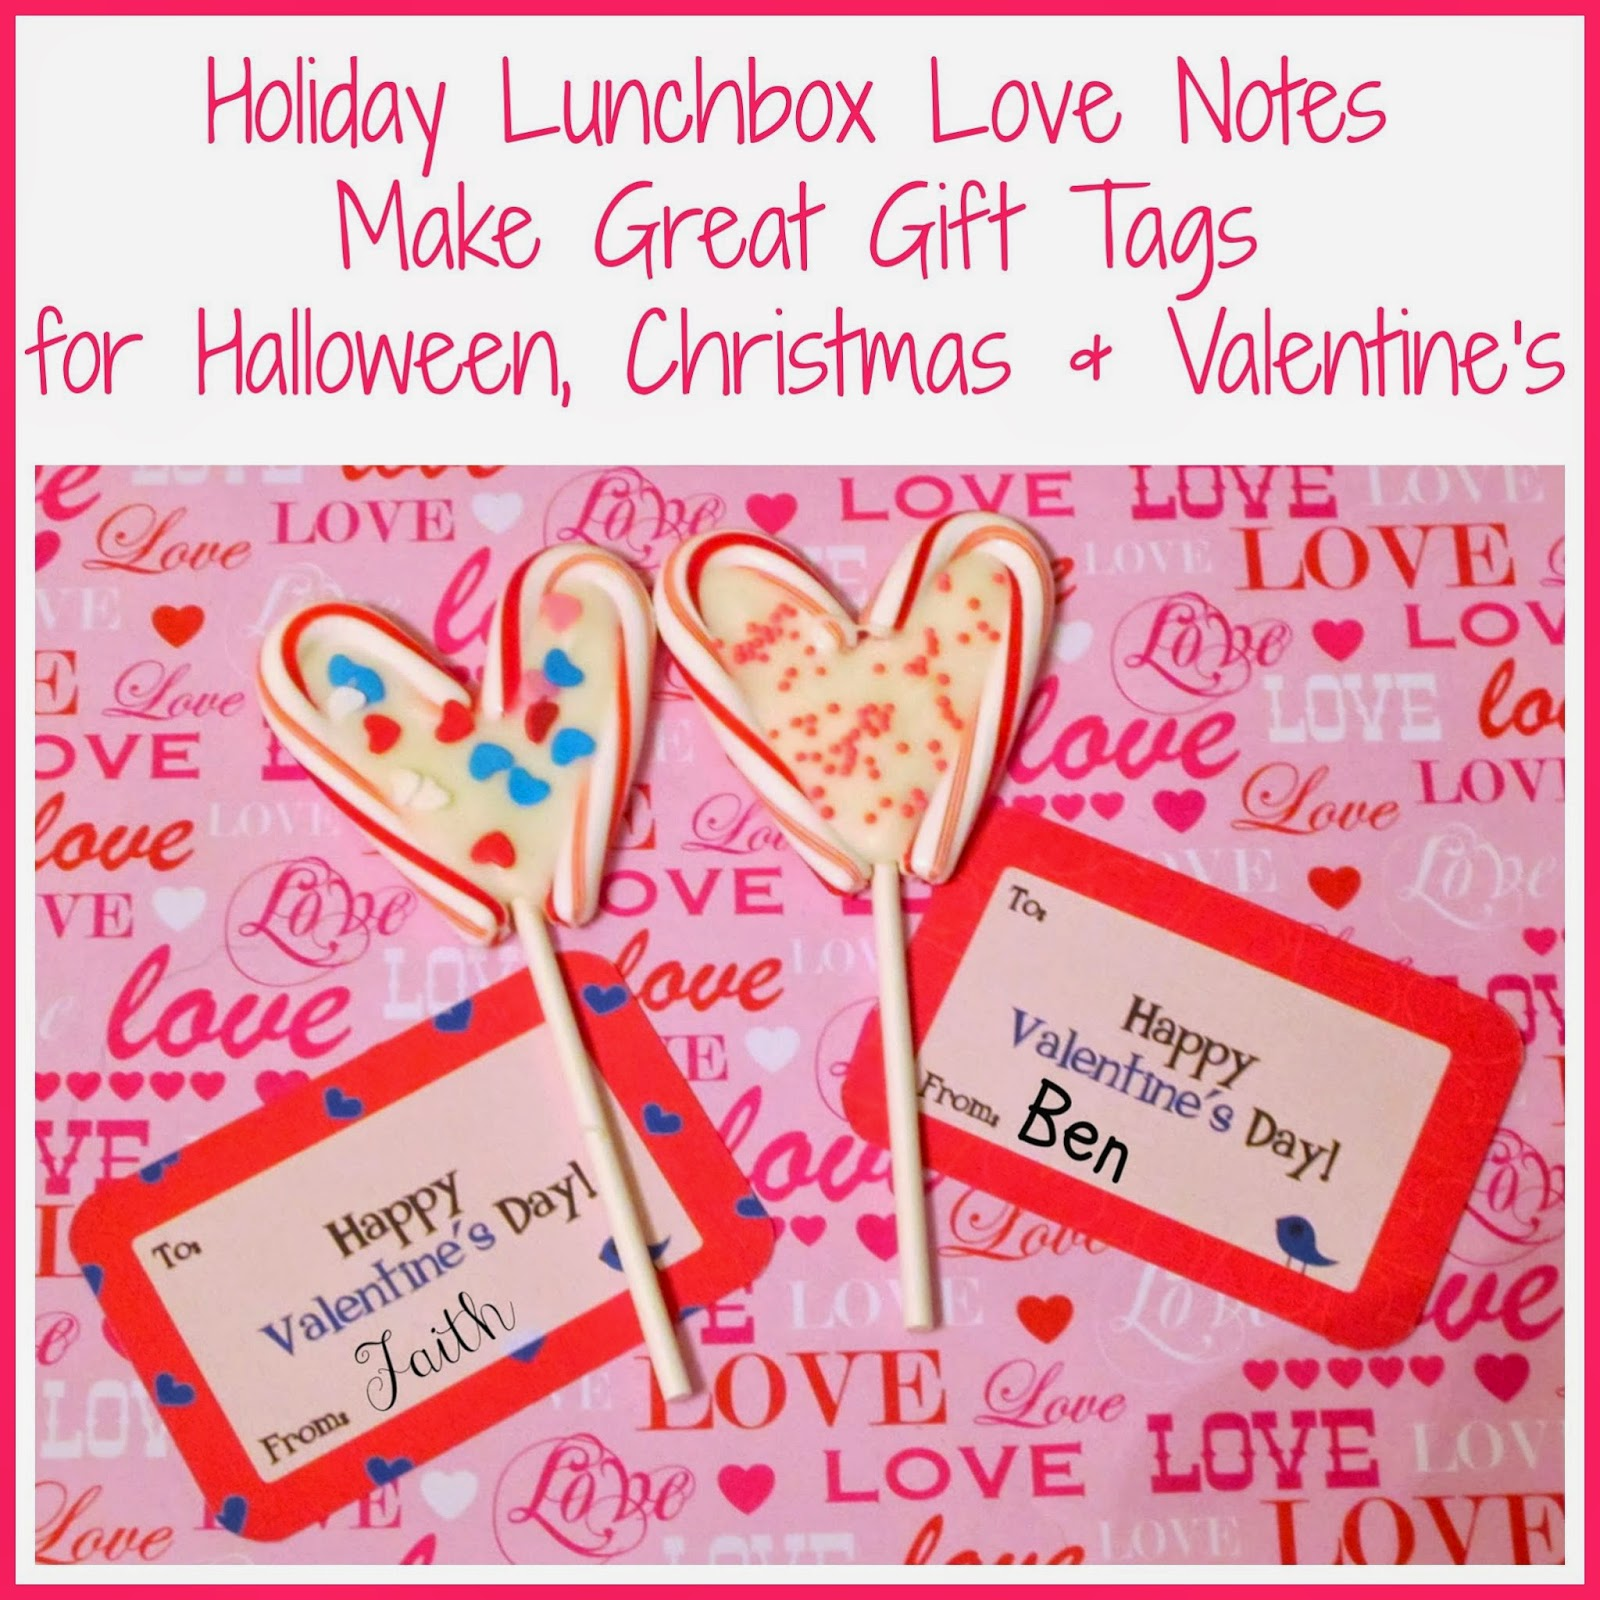 bring love to lunch with lunchbox love